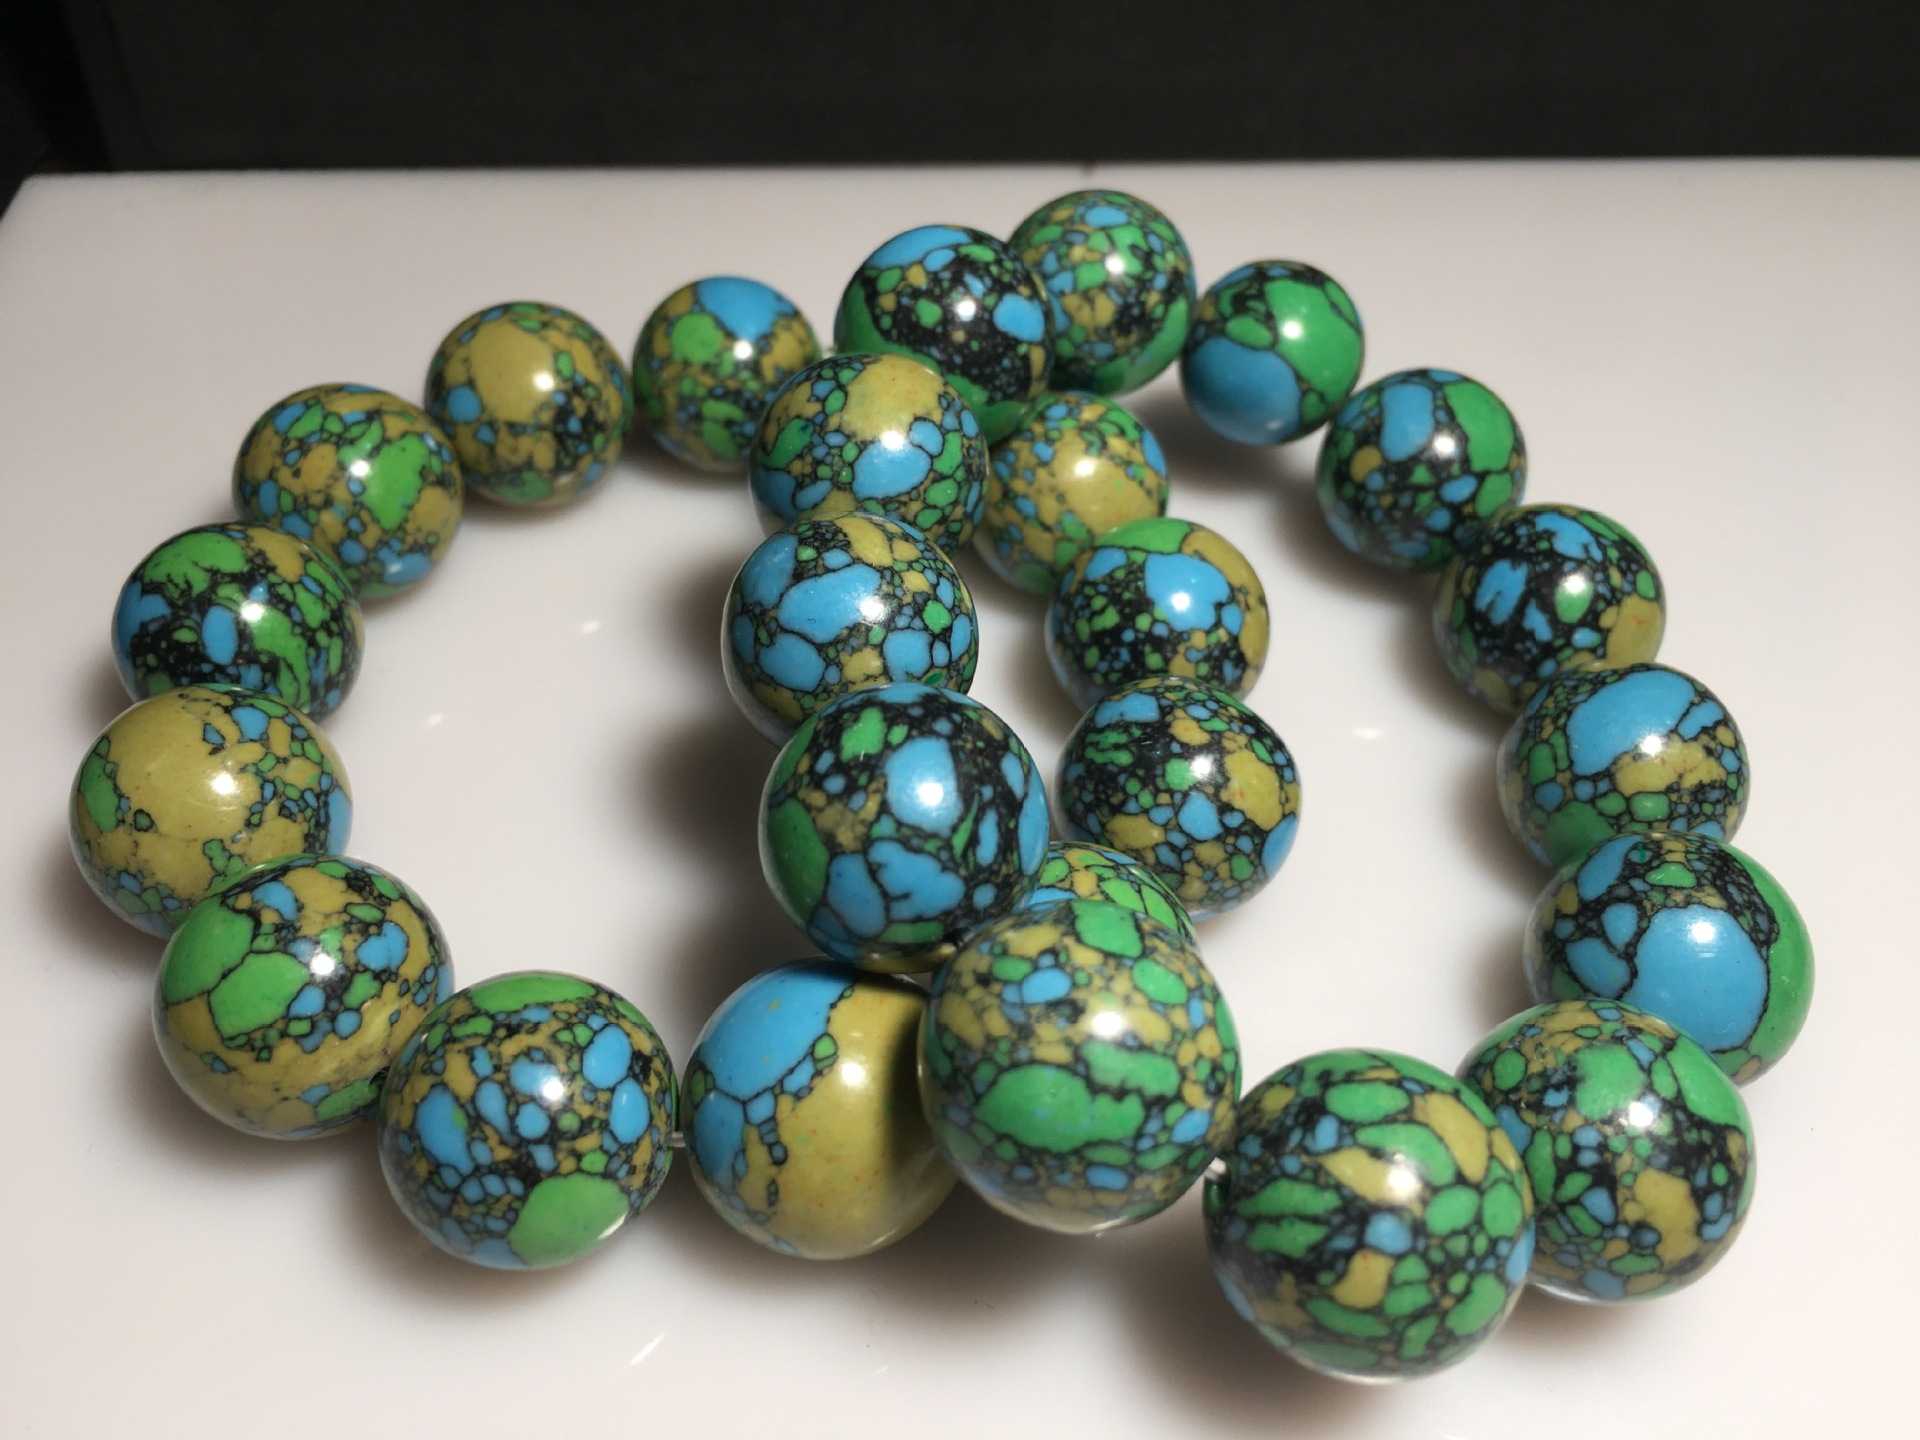 Cool Turquoise-Like Bead Bracelet for Cozy Dates